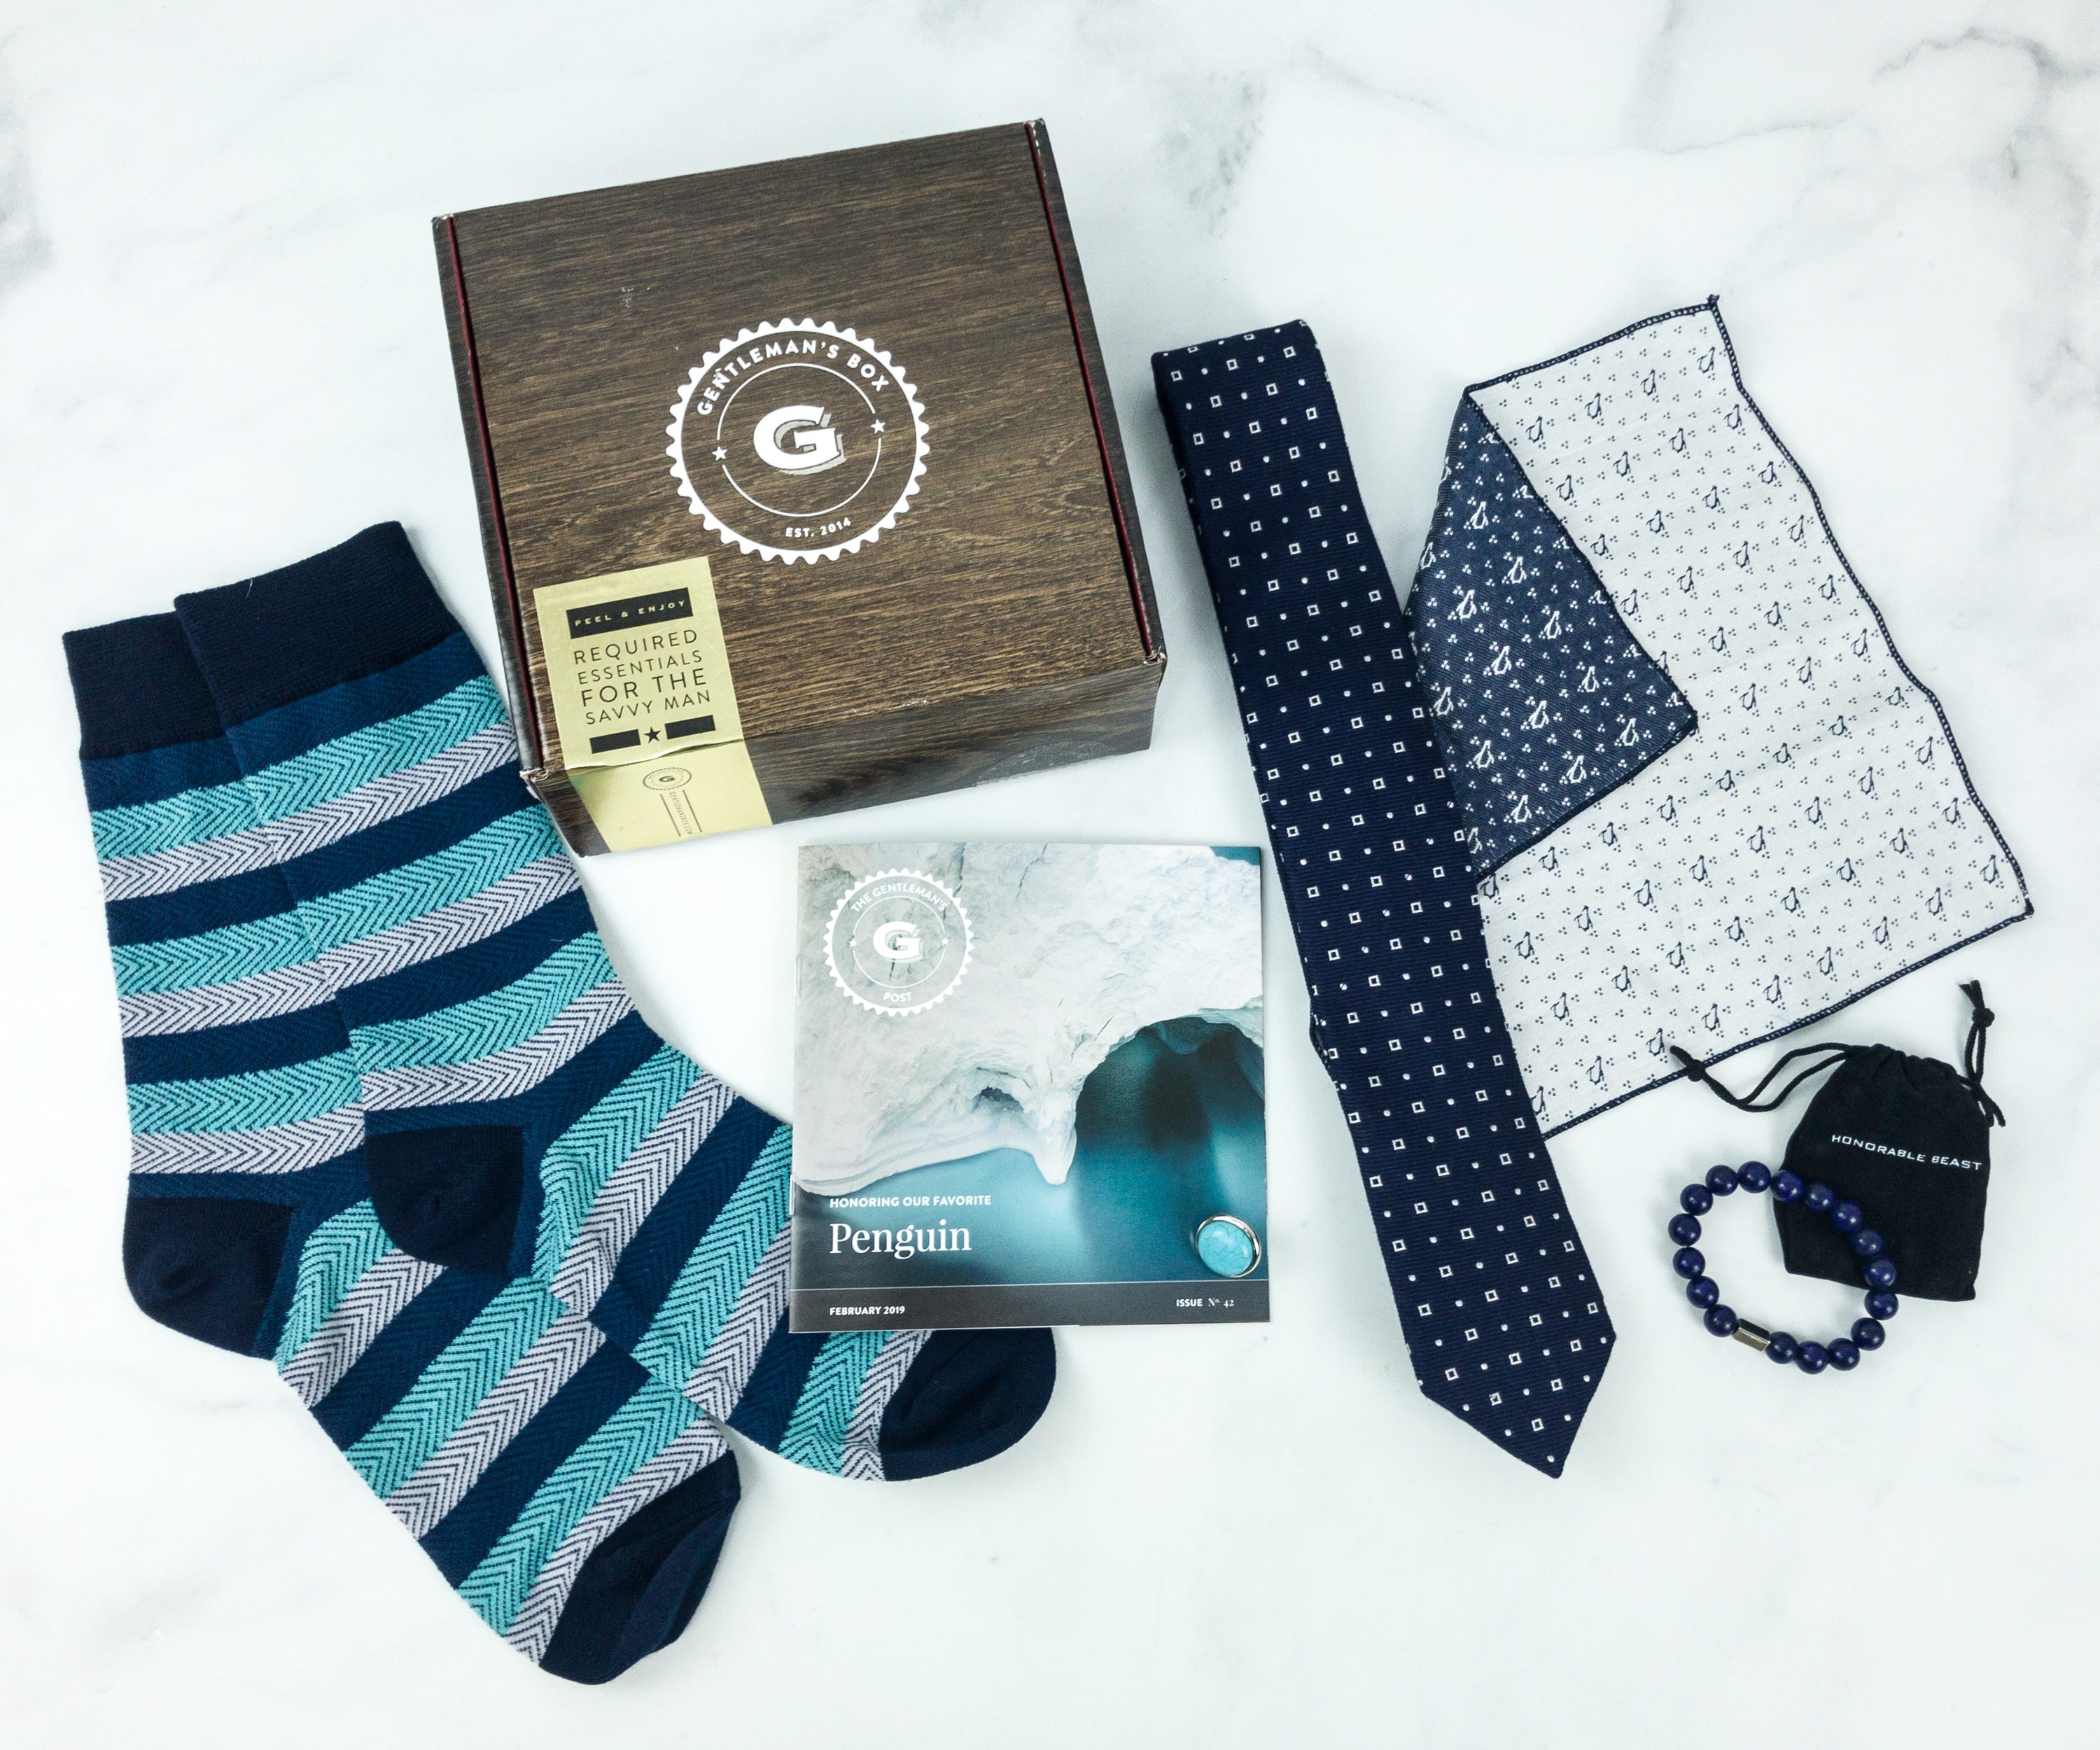 The Gentleman's Box February 2019 Review & Coupon